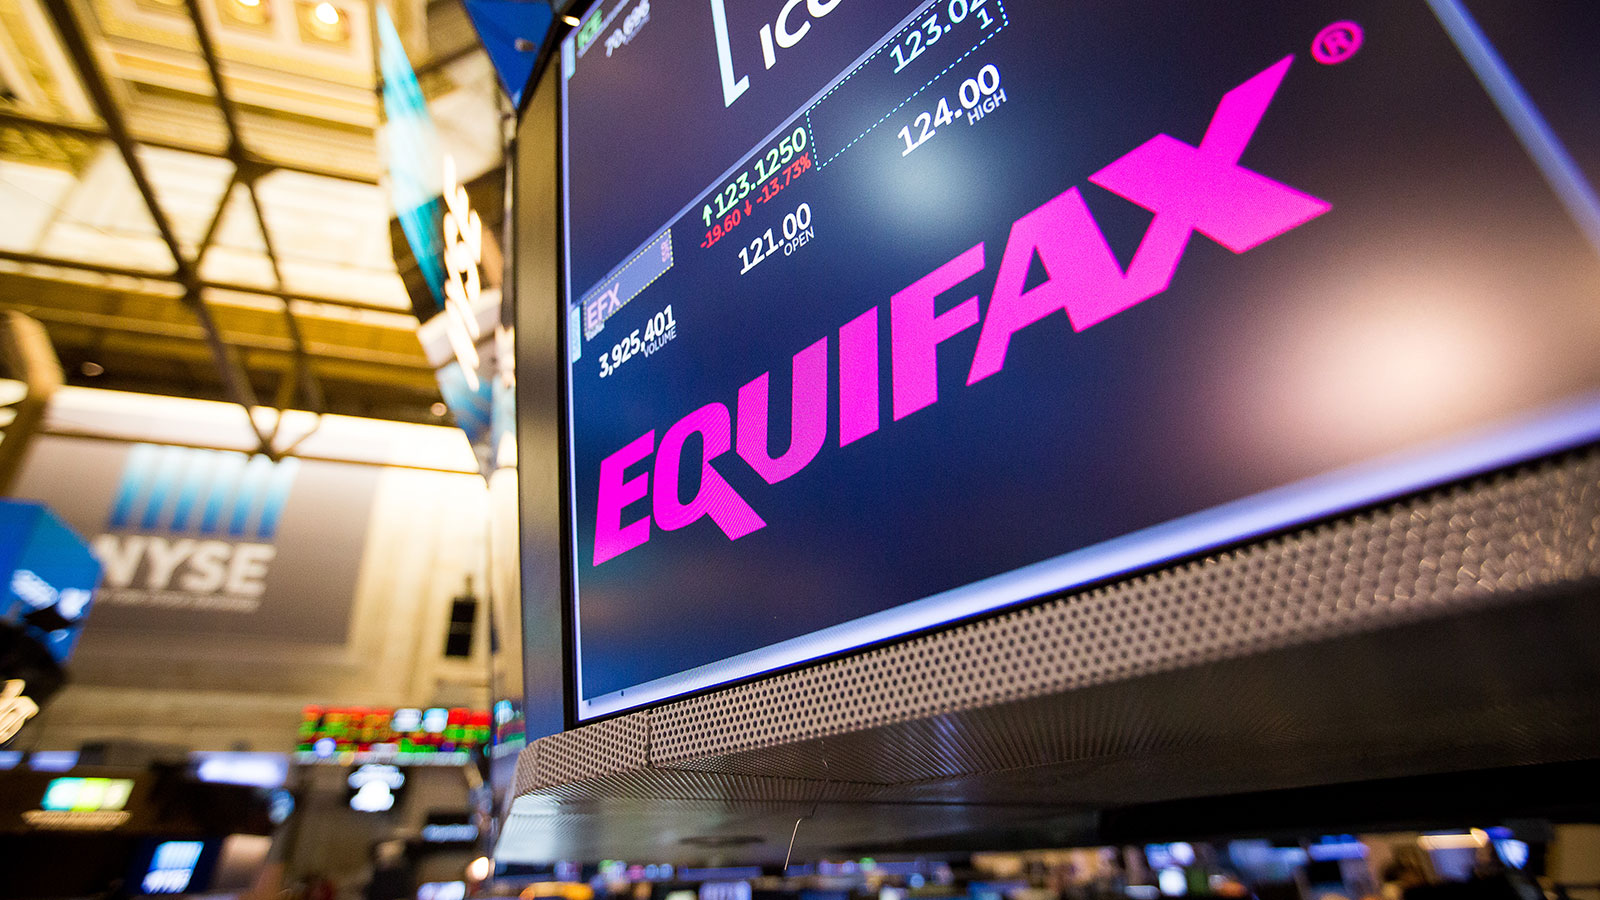 should-you-freeze-your-credit-after-equifax-breach.jpg